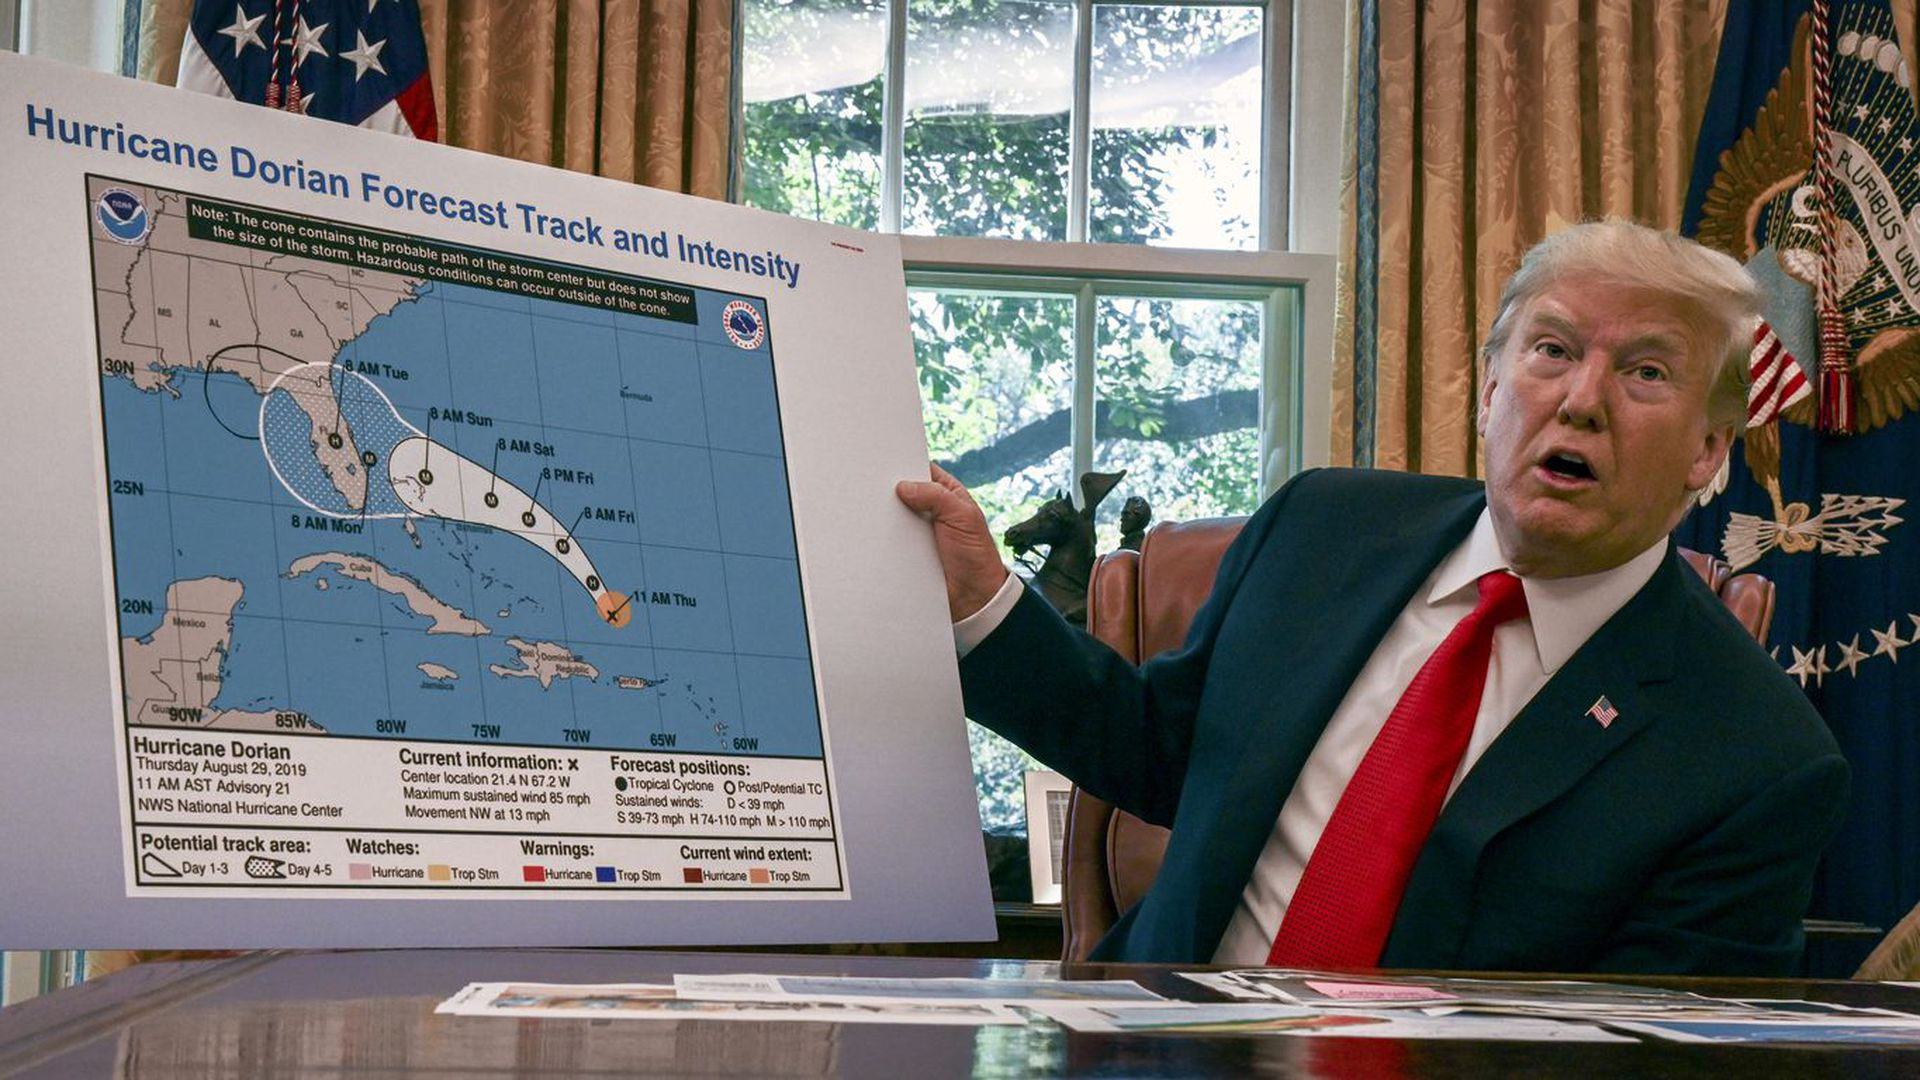 Trump gives an Oval Office briefing on the status of Hurricane Dorian on Sept. 4.